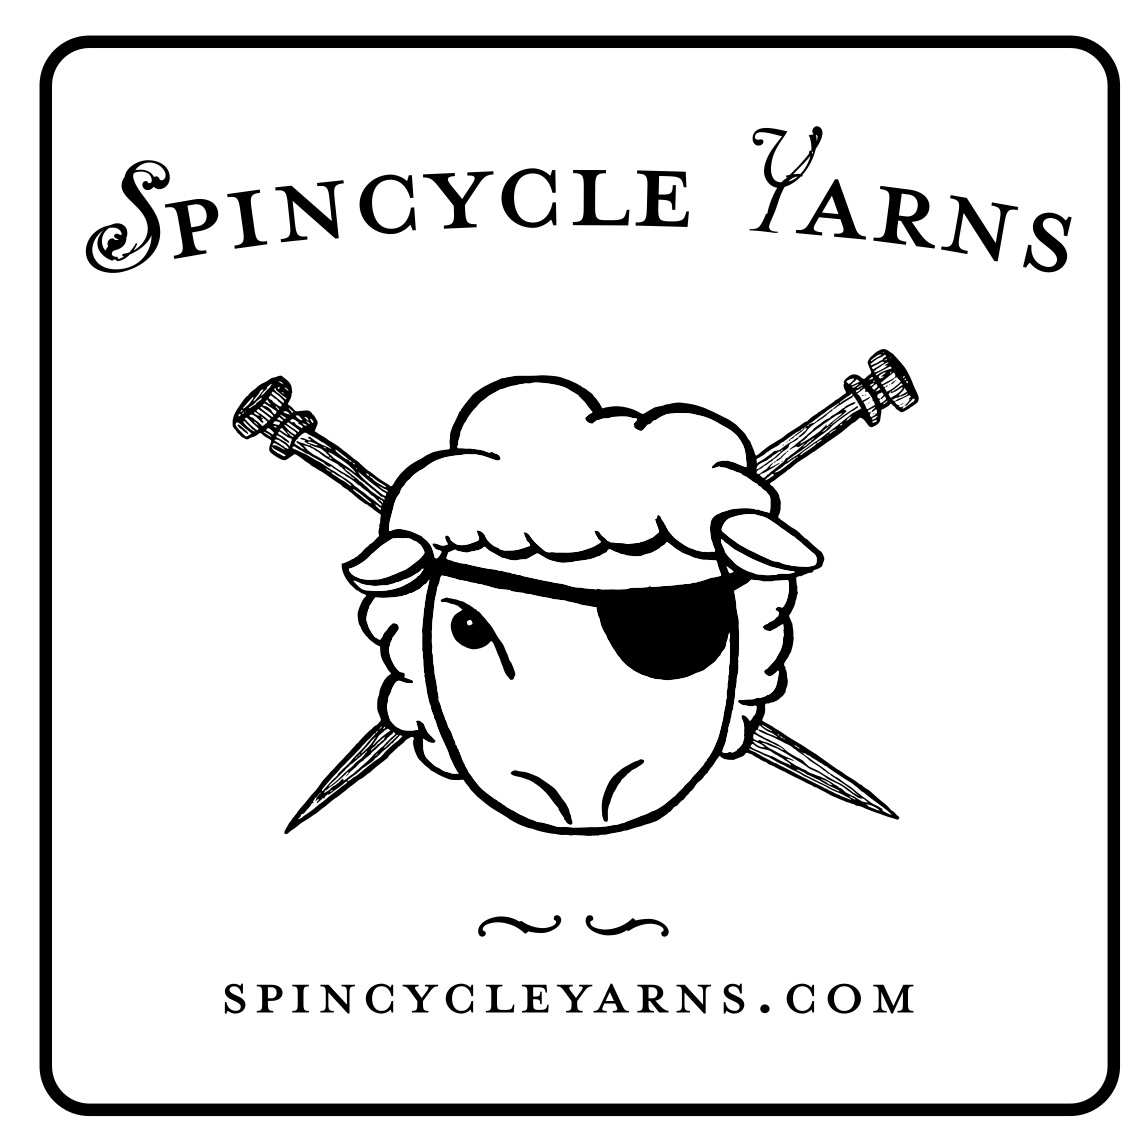 Spincycle yarns at For Yarn's Sake